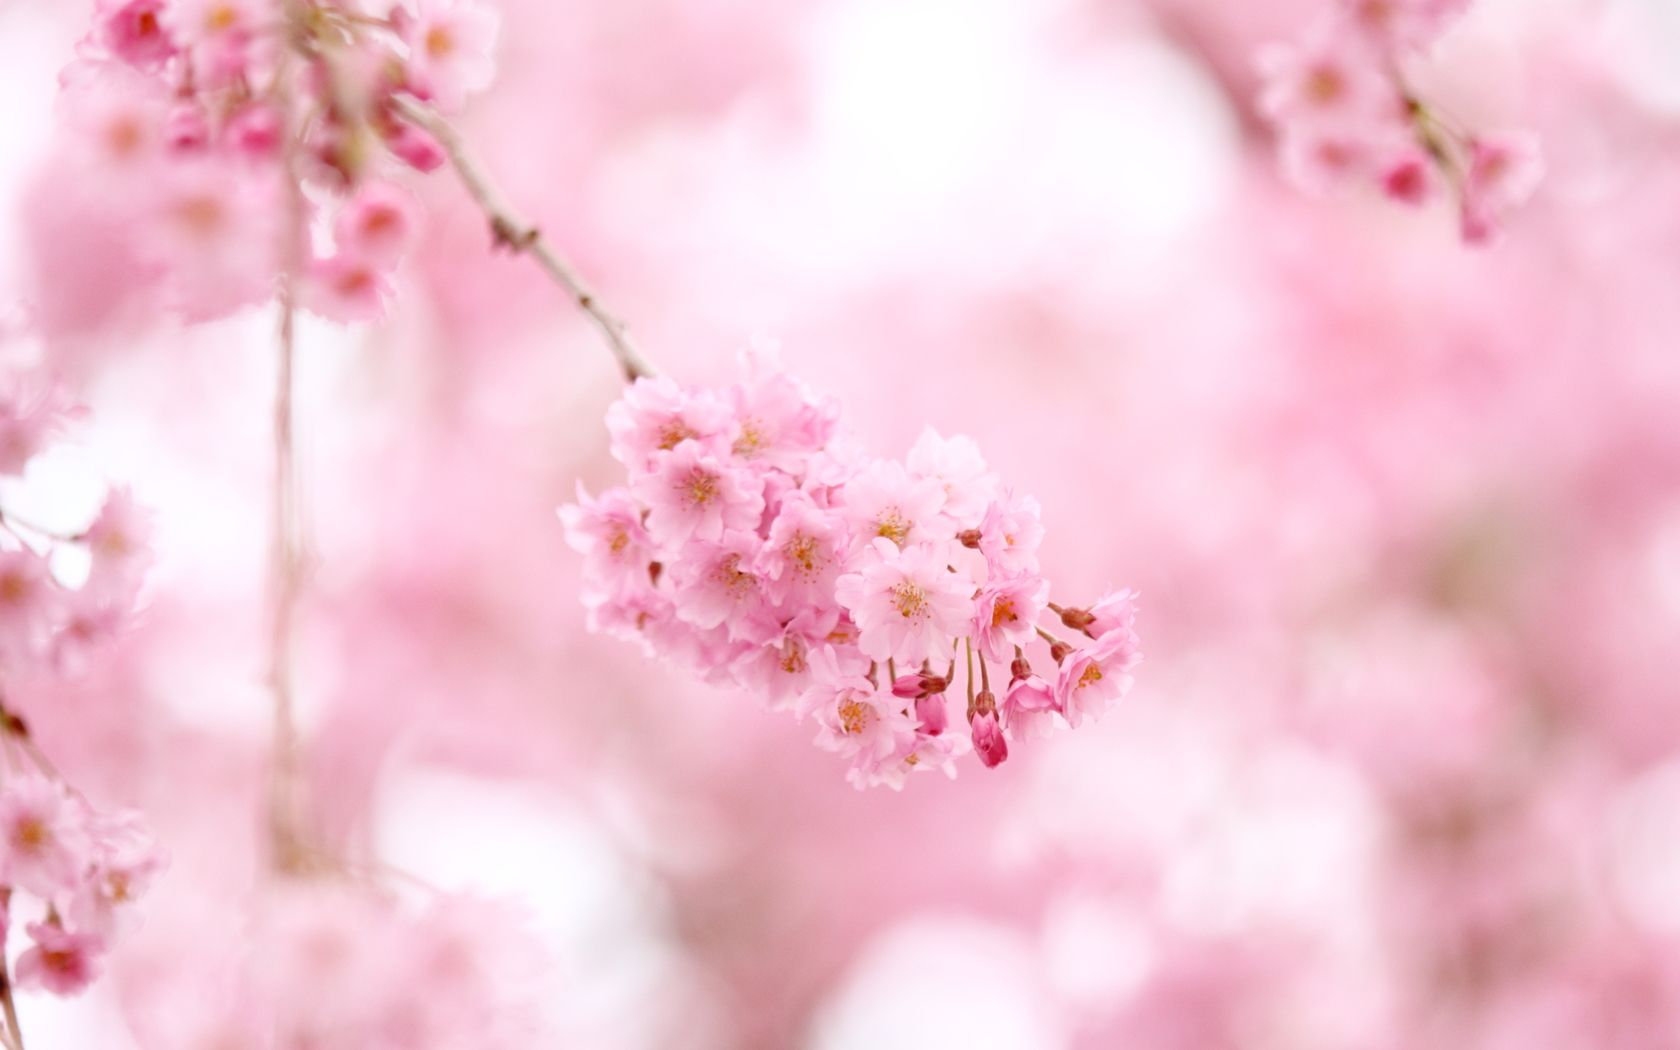 Inspiration Who Does Not Like Natural Stone Or Is Too Expensive Should Look At The Offer Of The Spring Wallpaper Cherry Blossom Wallpaper Flower Aesthetic